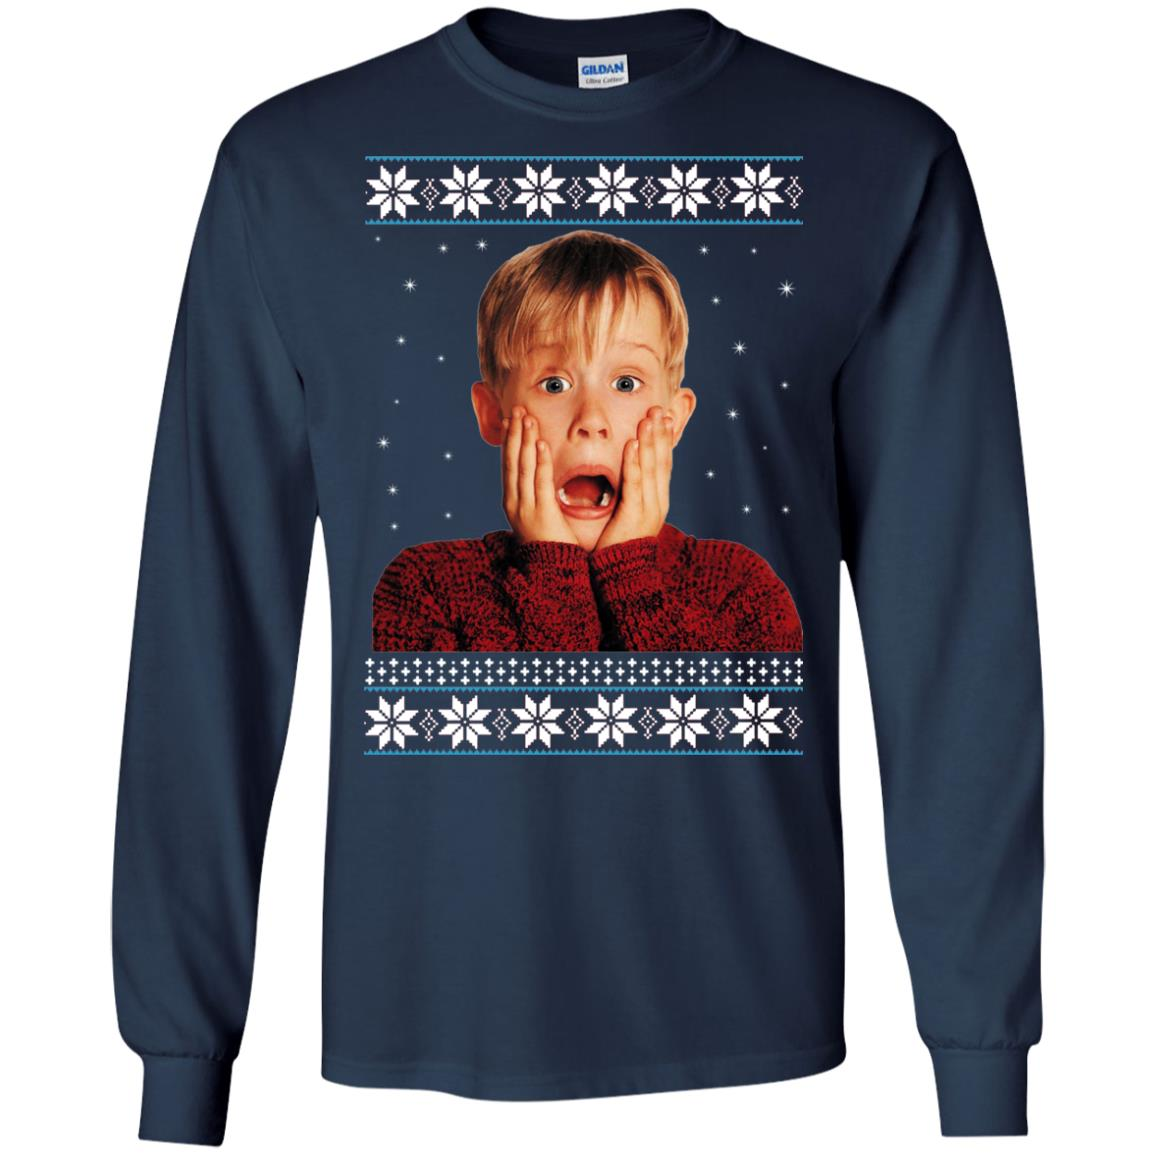 image 6273 - Home Alone: Kevin McCallister Sweatshirt, Hoodie, Long Sleeve